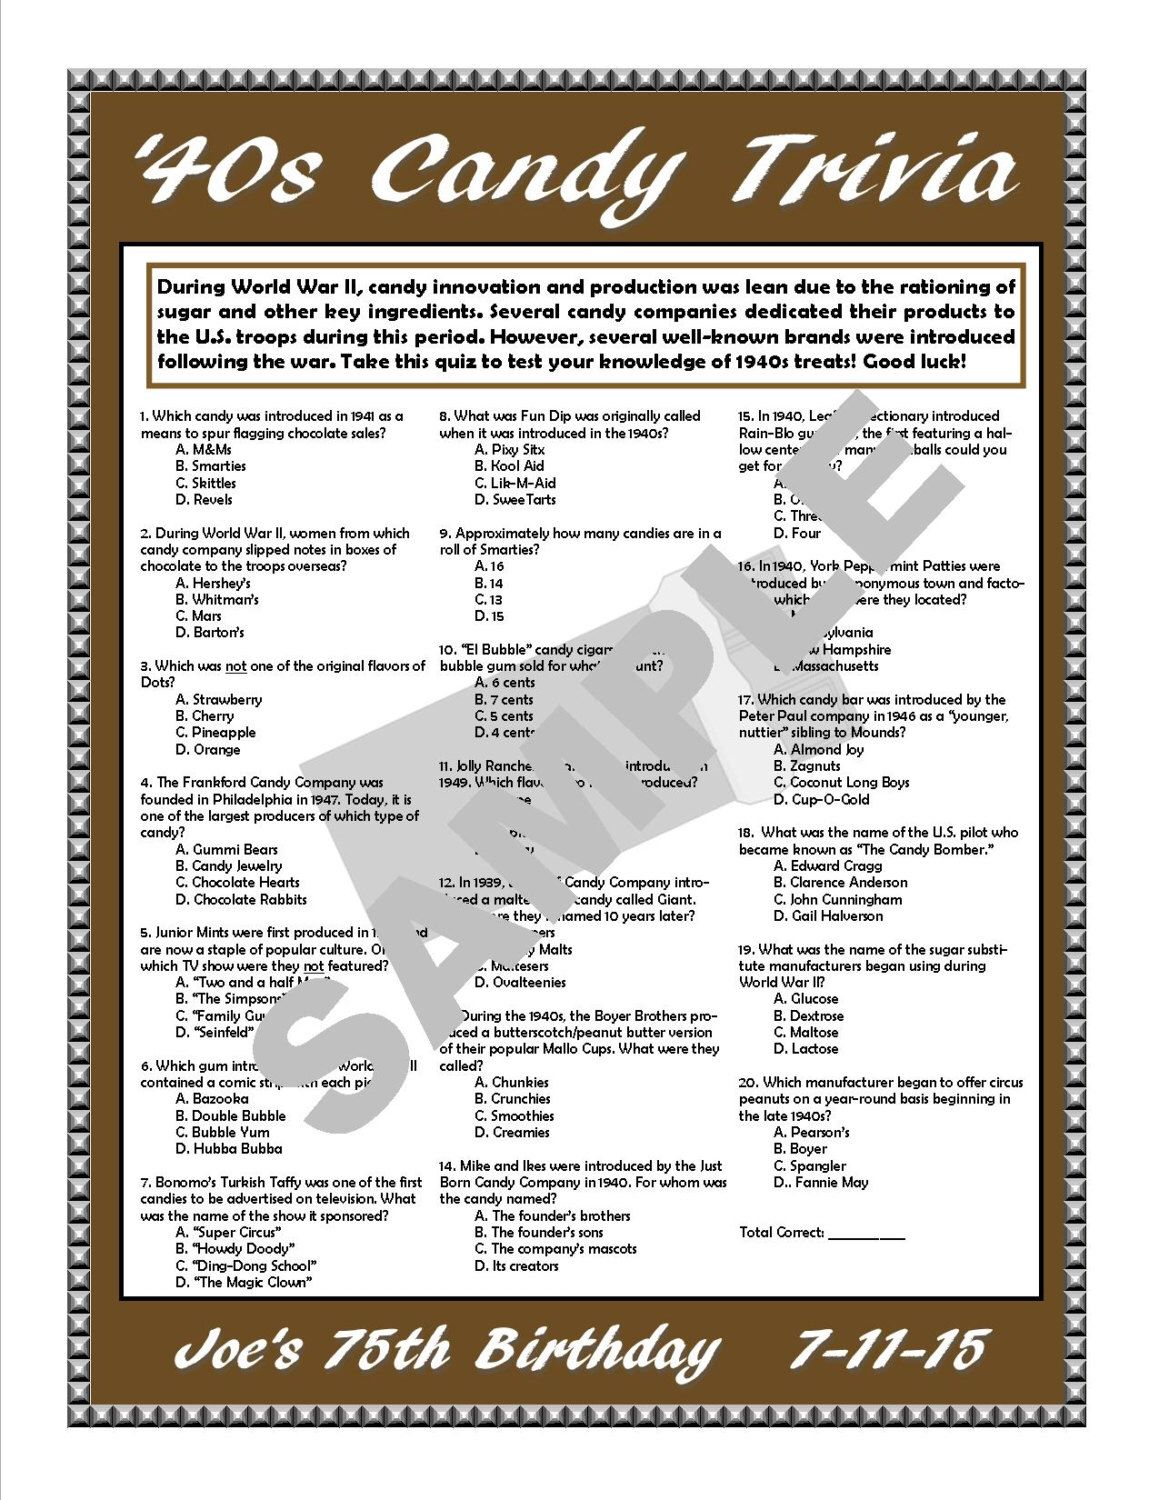 1940s candy trivia printable game personalize for birthdays anniversaries candy themed